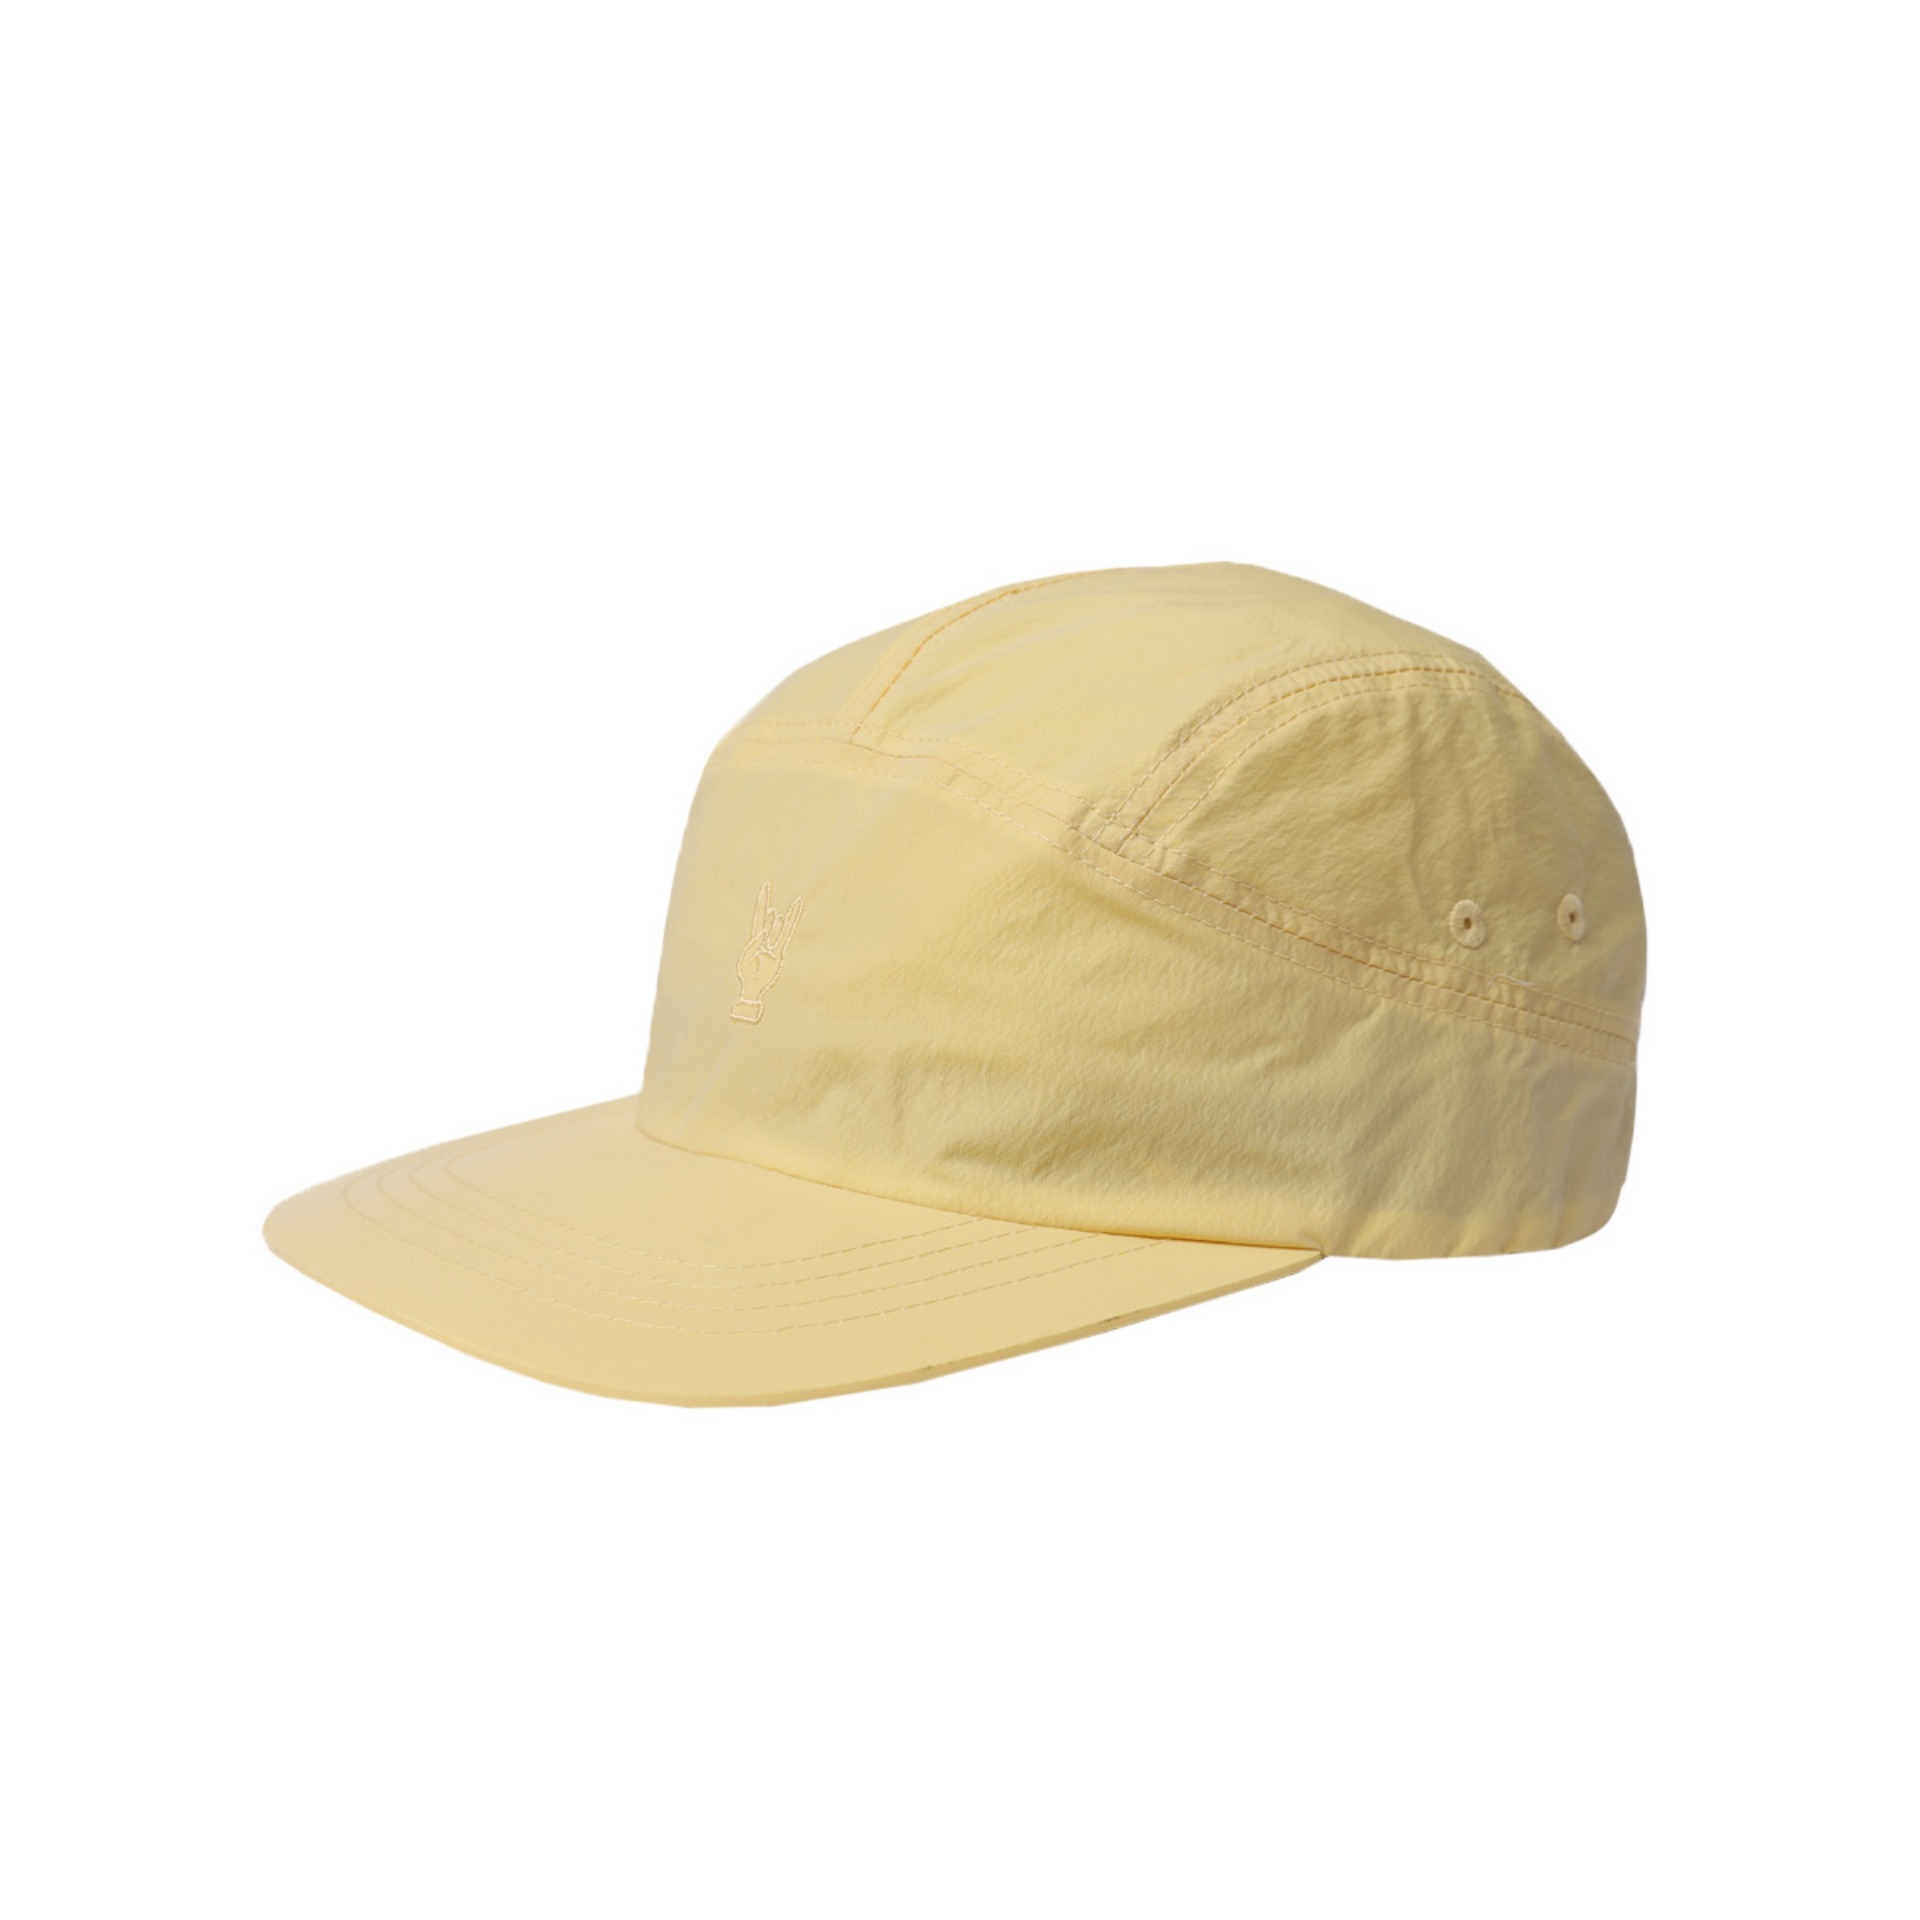 CAMPING CAP(YELLOW)